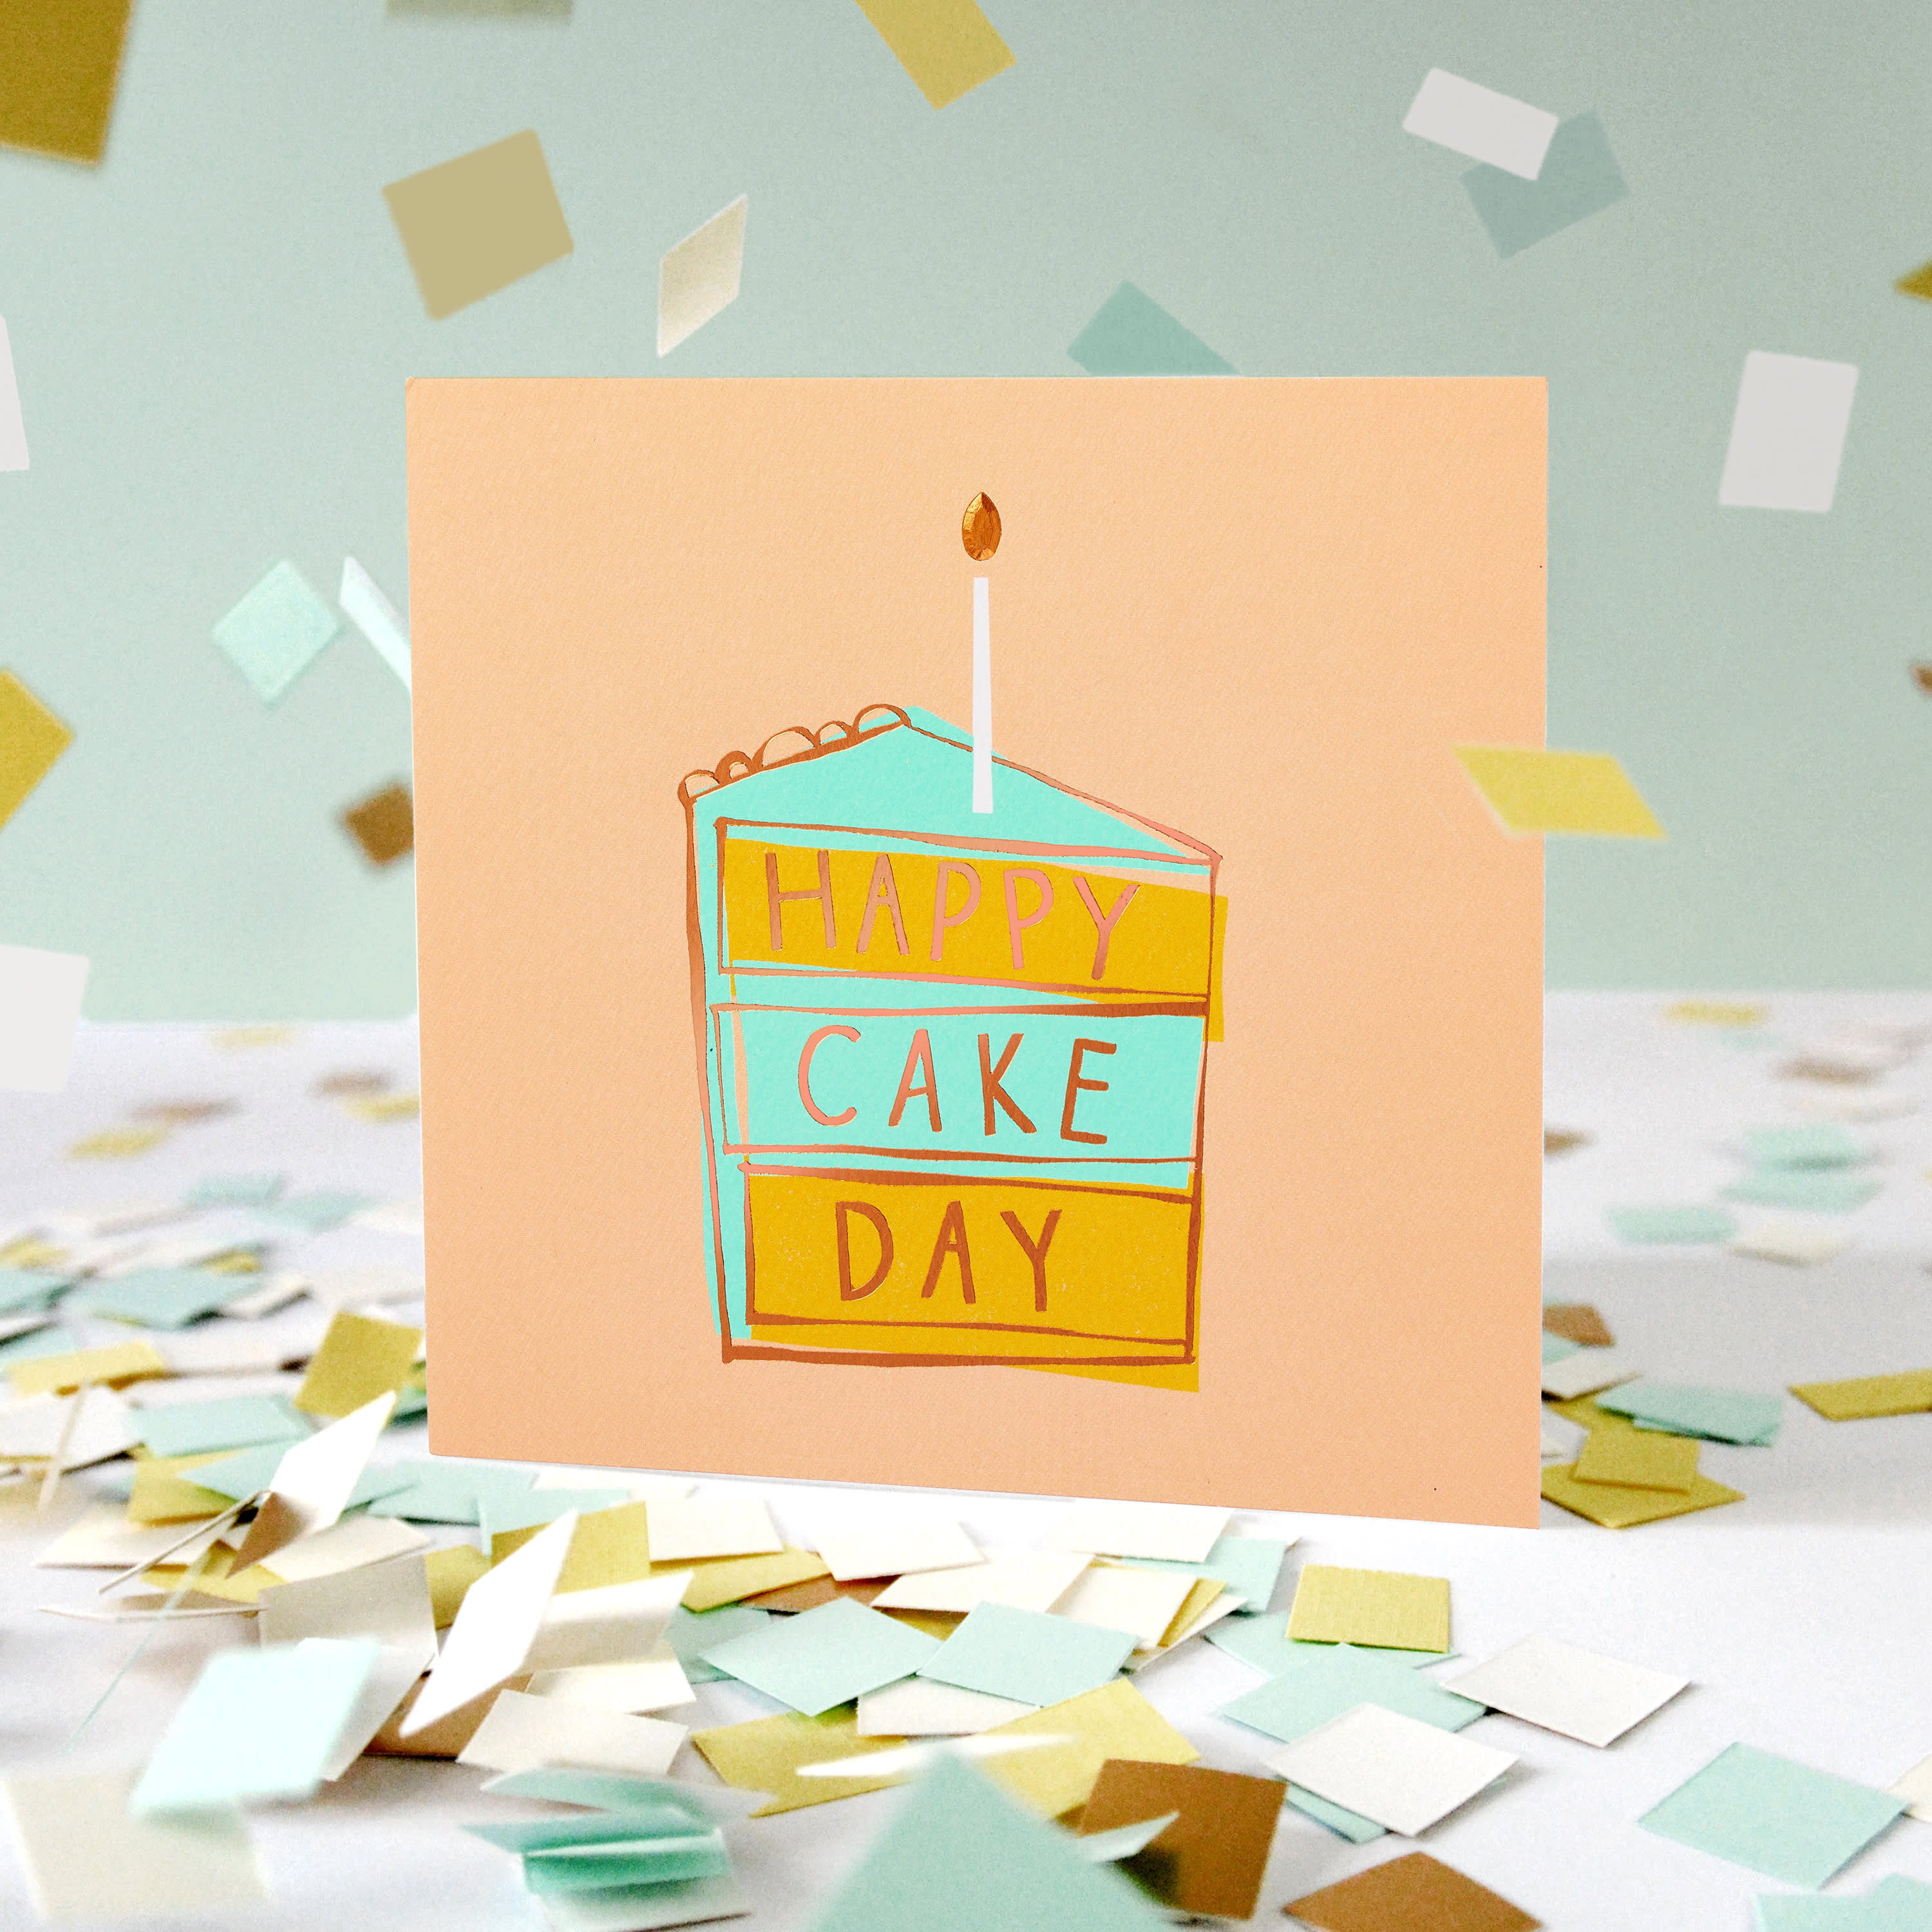 Cake Day Birthday Card image